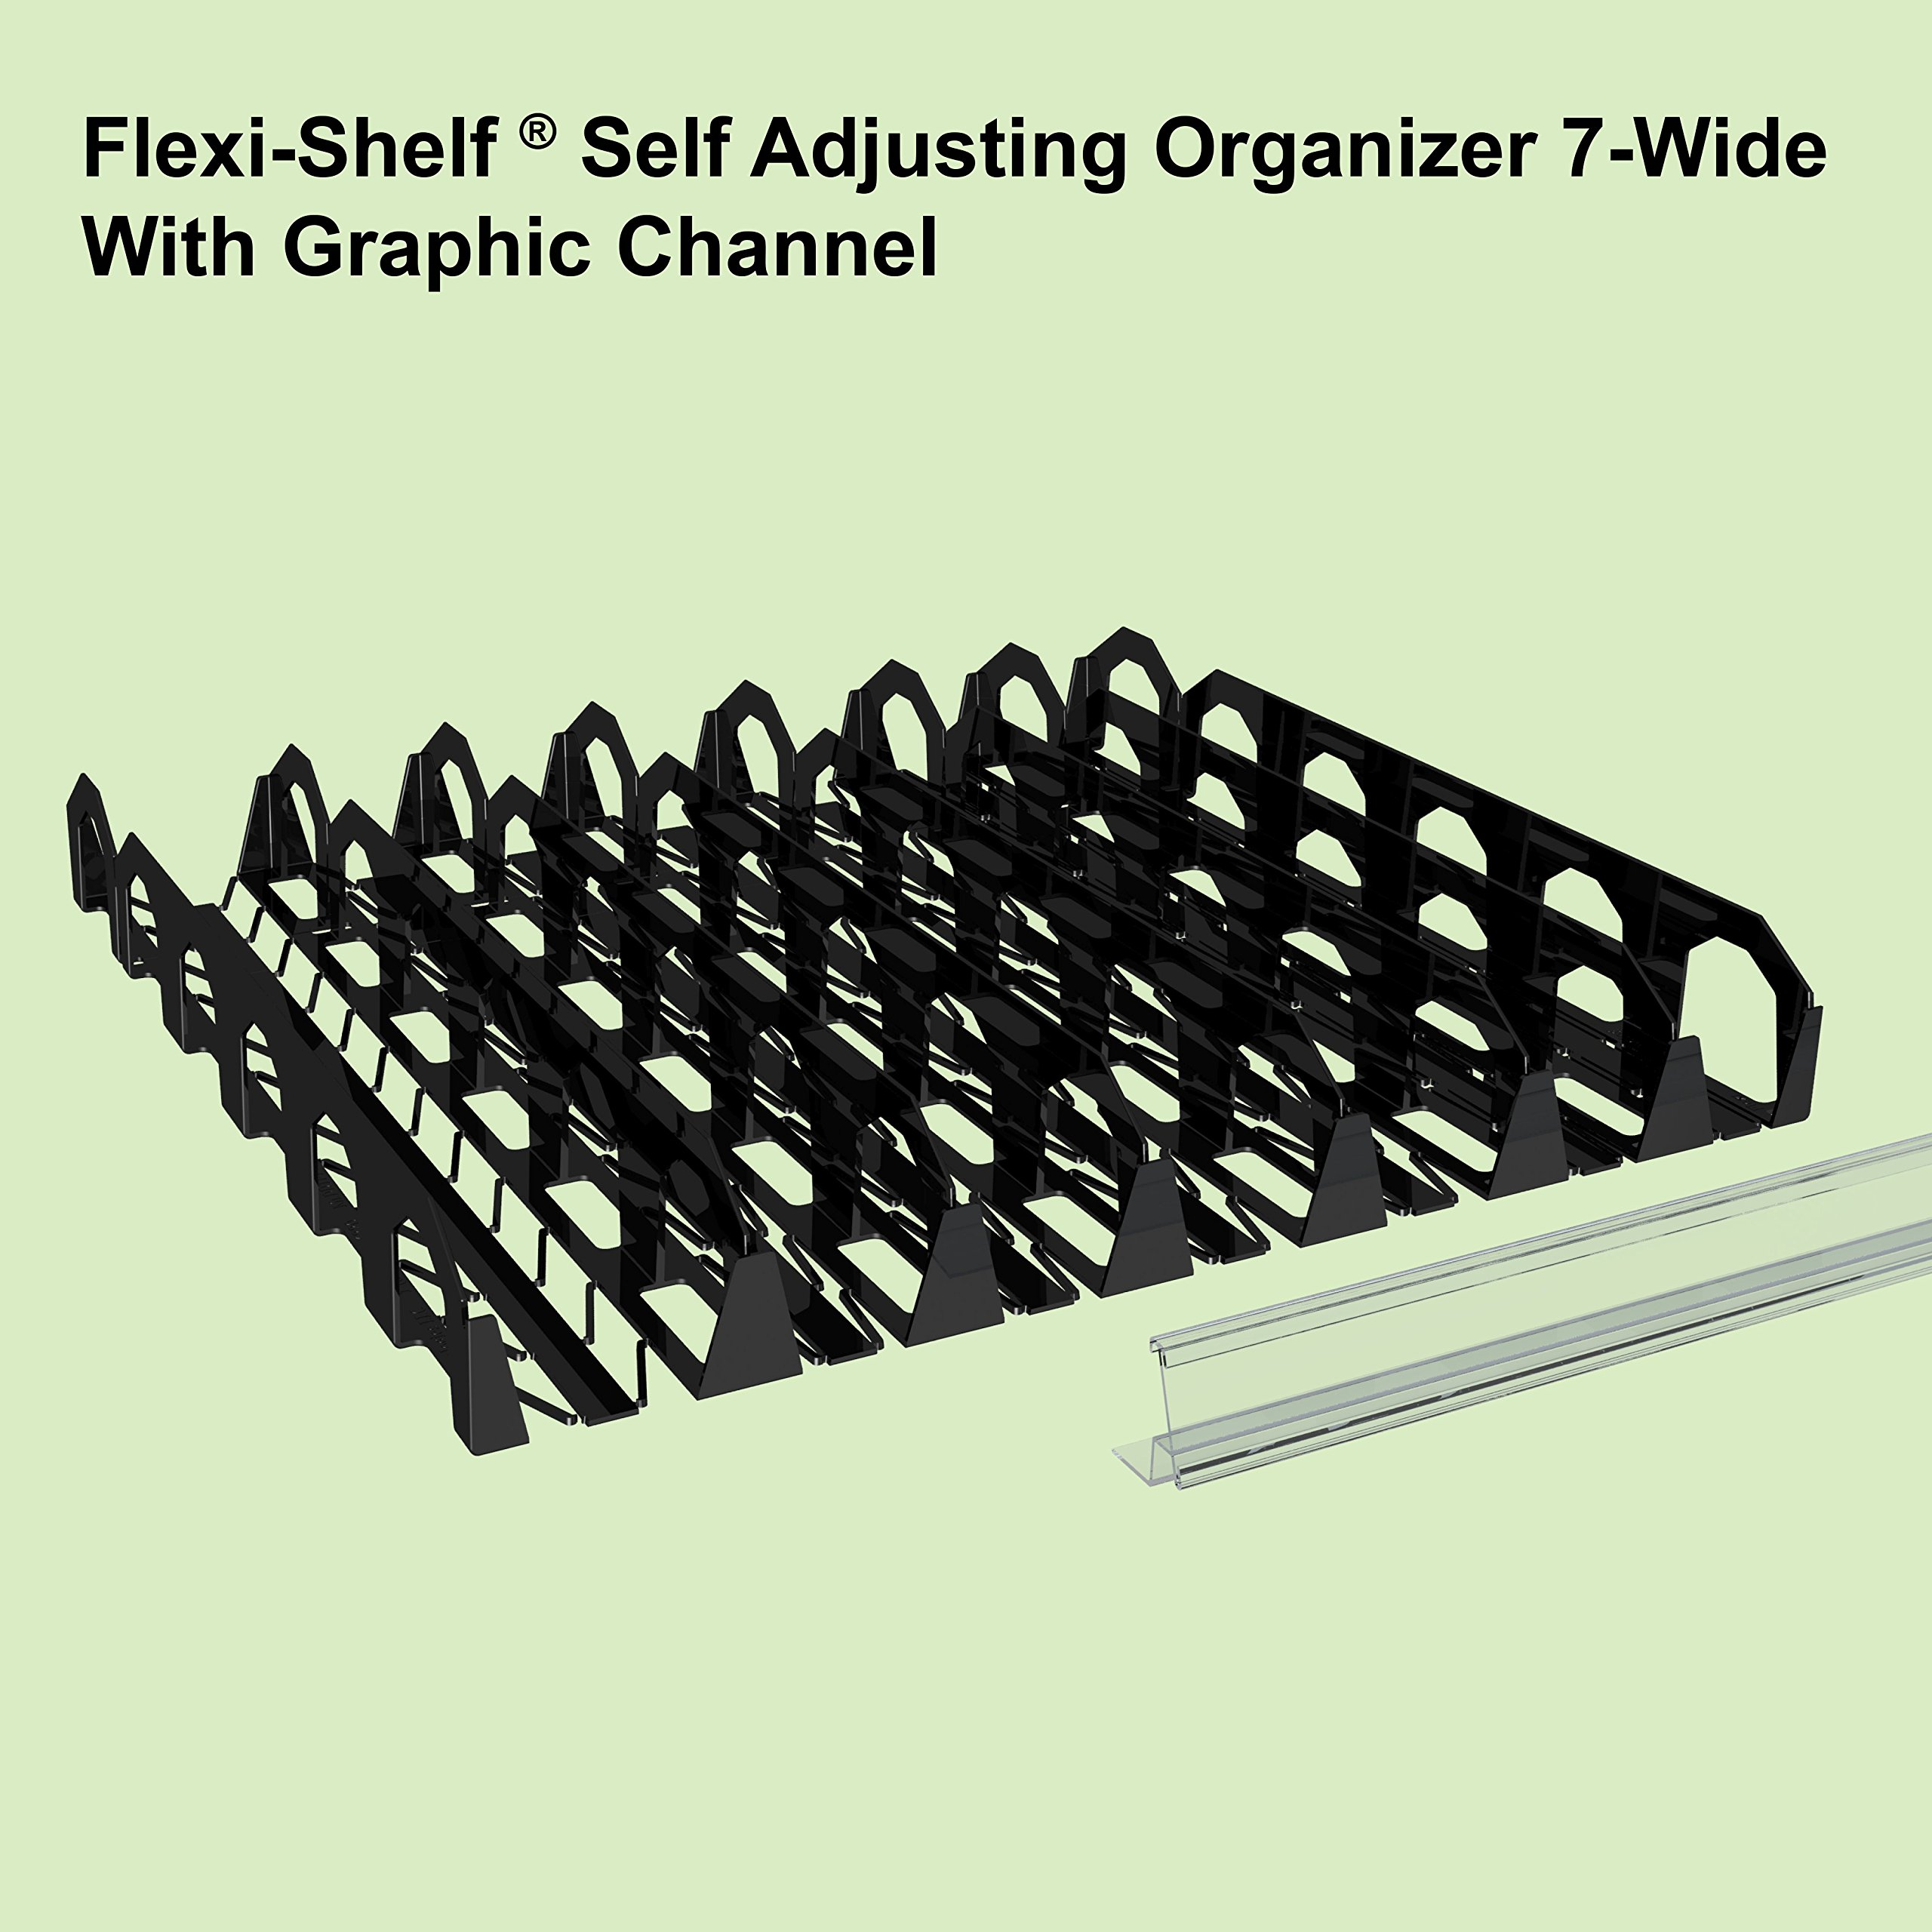 Display Technologies, LLC Flexi-Shelf Flat Shelf Organizer by Display Technologies, LLC